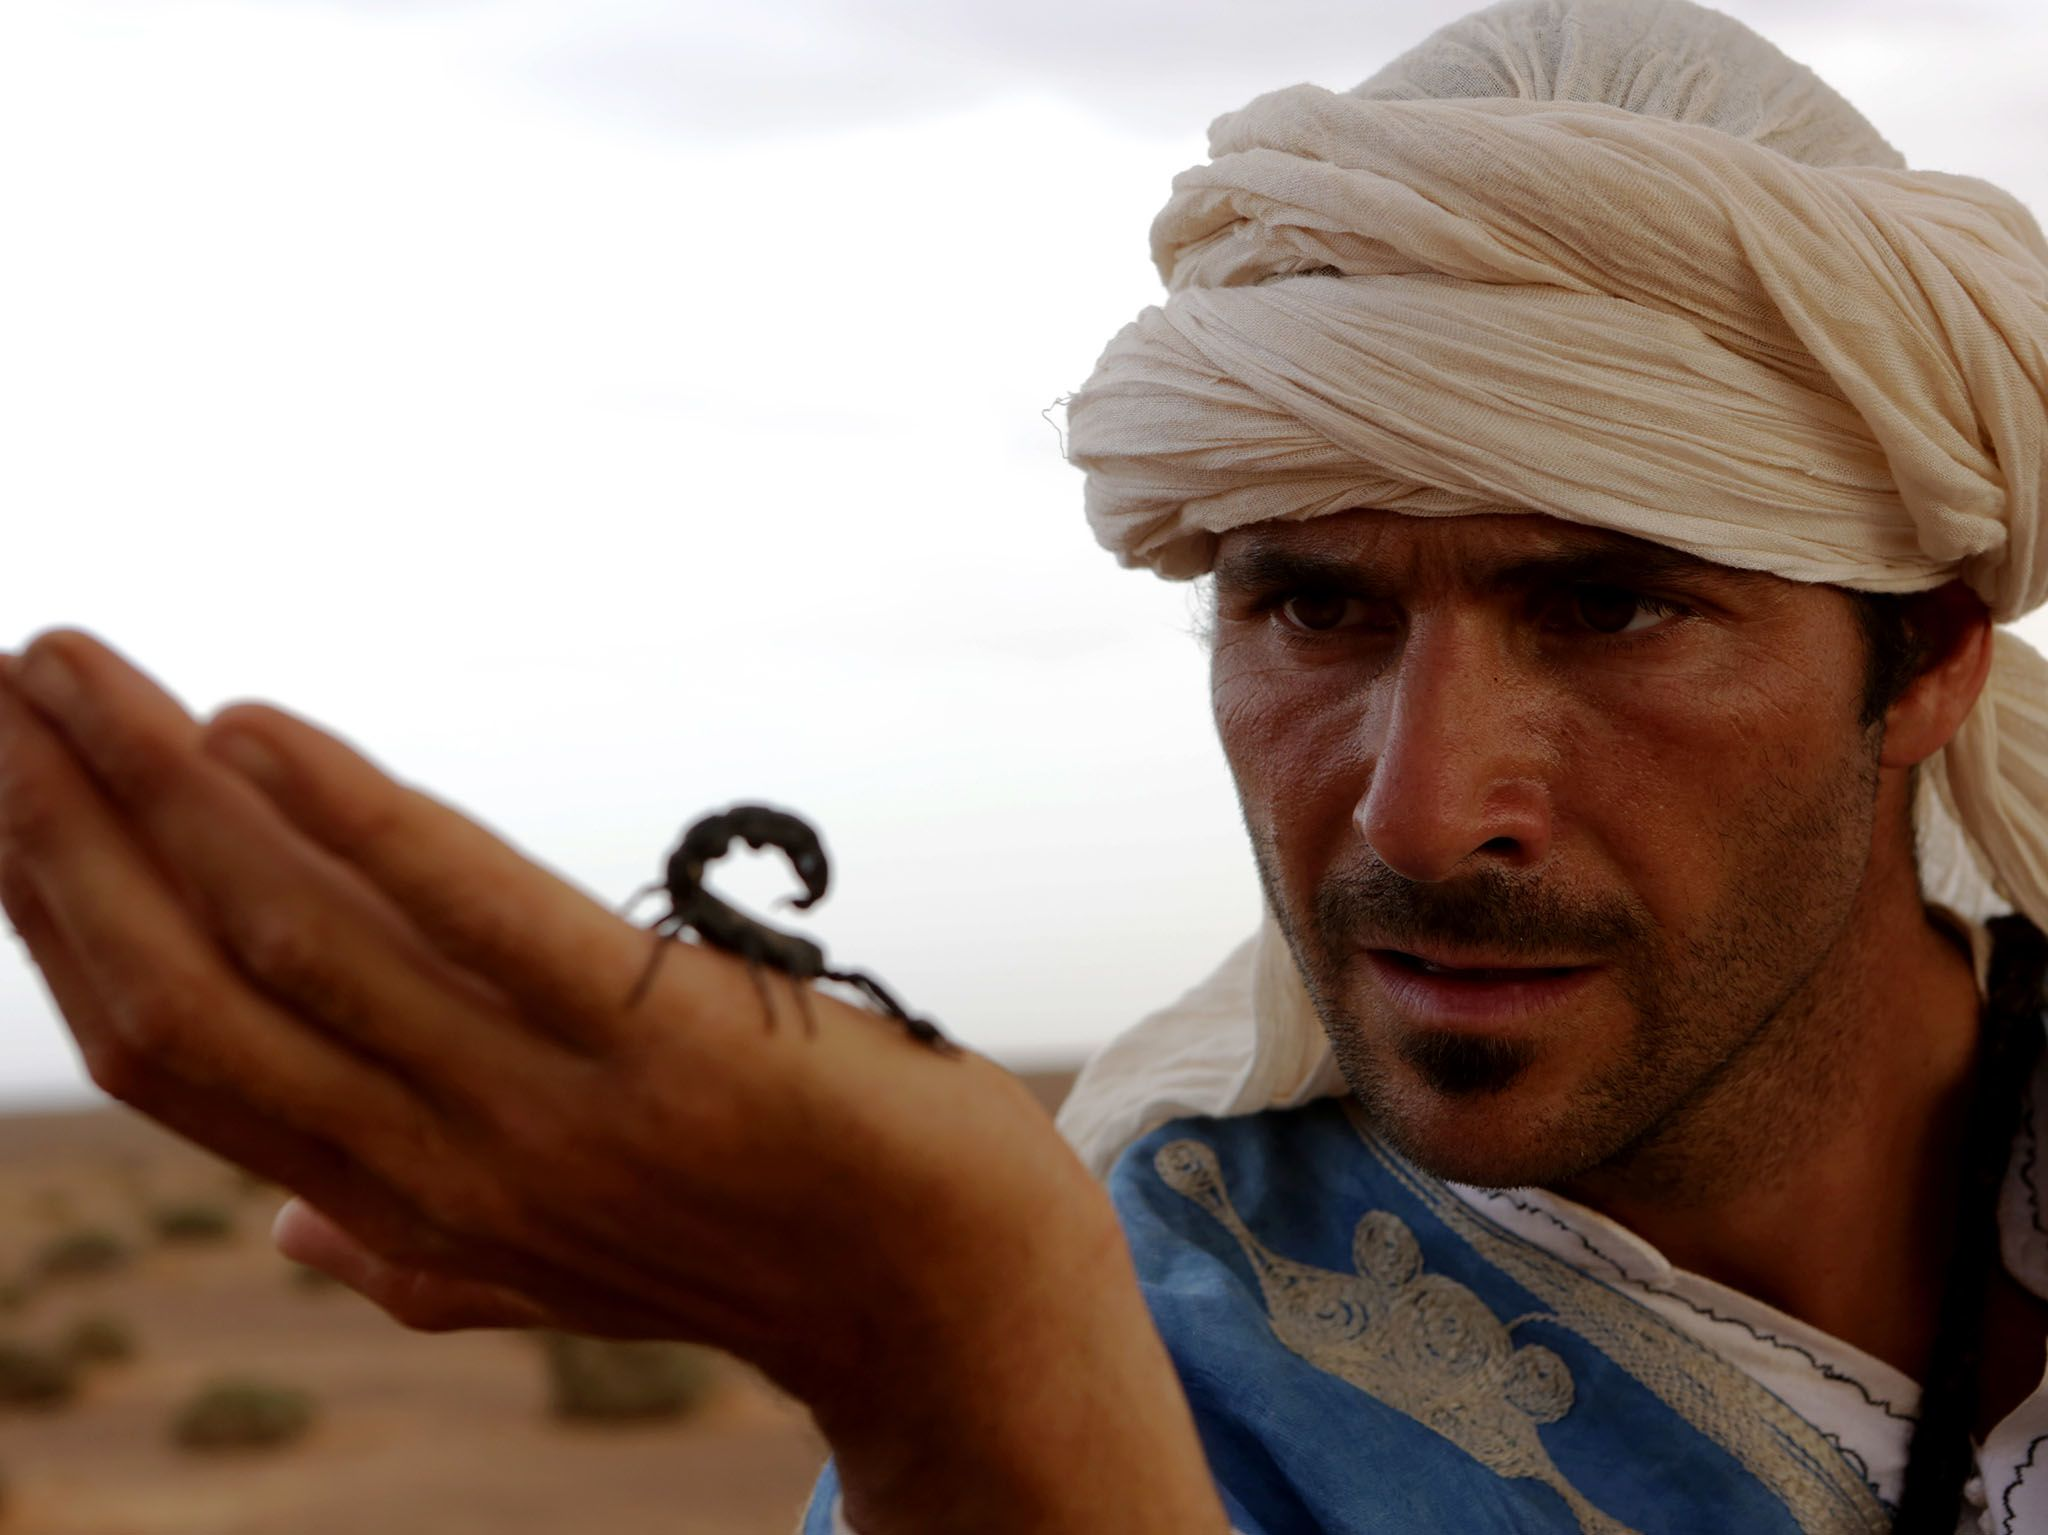 Morocco: Hazen holds a poisonous scorpion. This image is from Primal Survivor. [Photo of the day - می 2017]